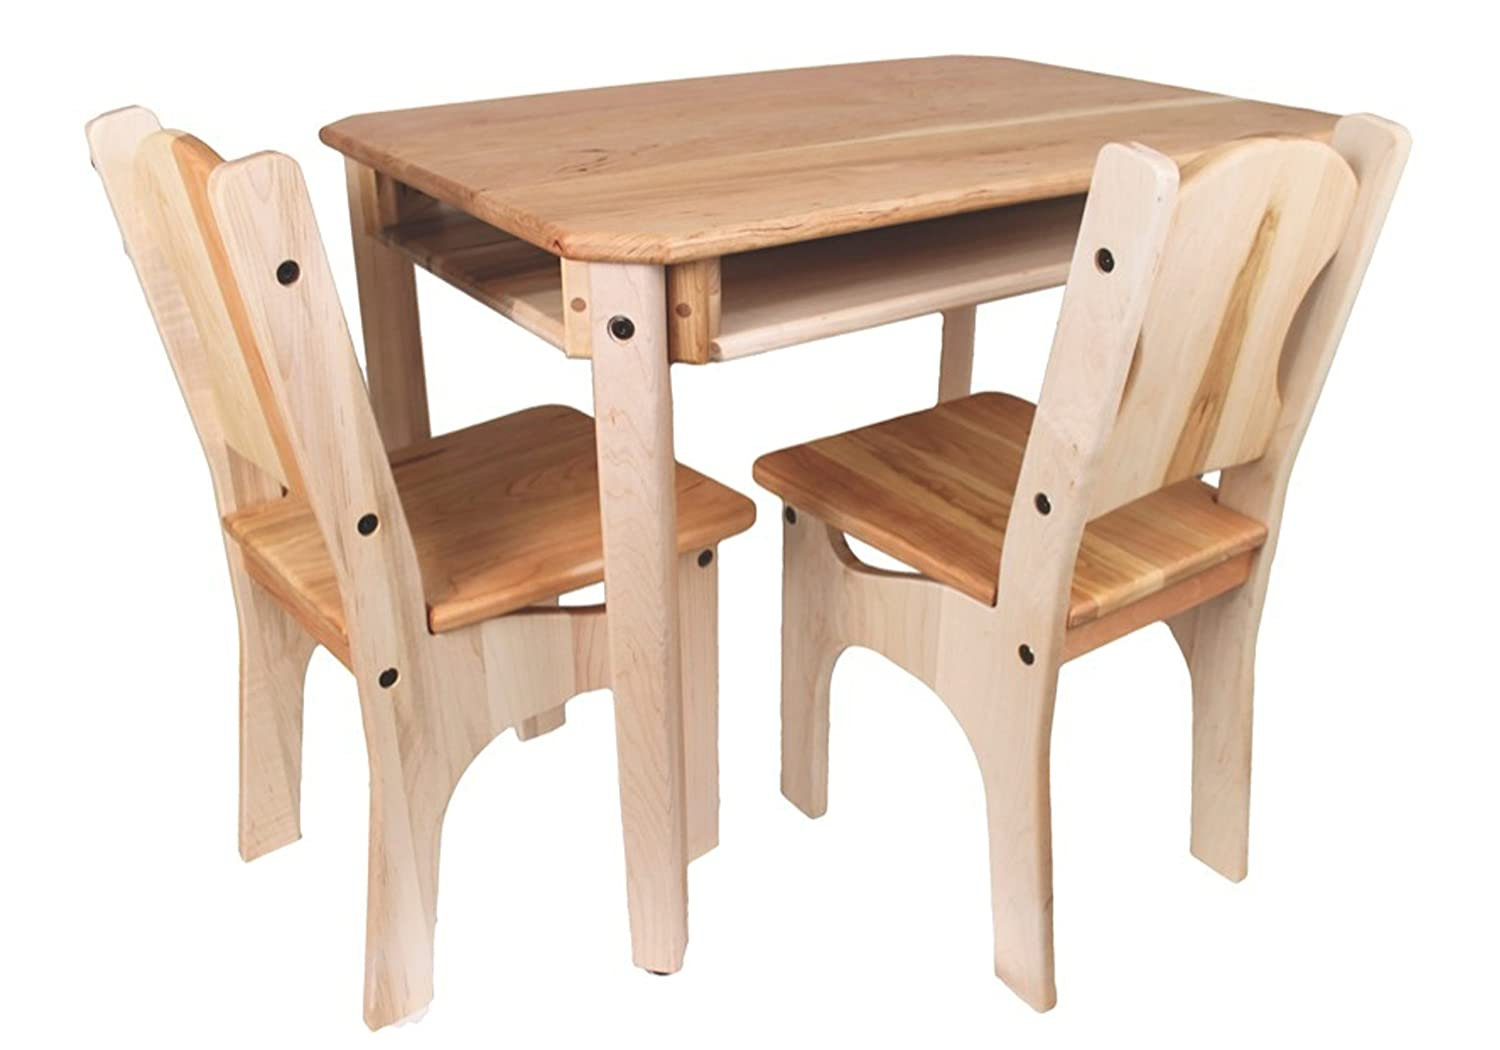 Amazon.com Camden Rose Child\u0027s Cherry \u0026 Maple Wood Table and 2 Chairs USA Made Baby  sc 1 st  Amazon.com & Amazon.com: Camden Rose Child\u0027s Cherry \u0026 Maple Wood Table and 2 ...